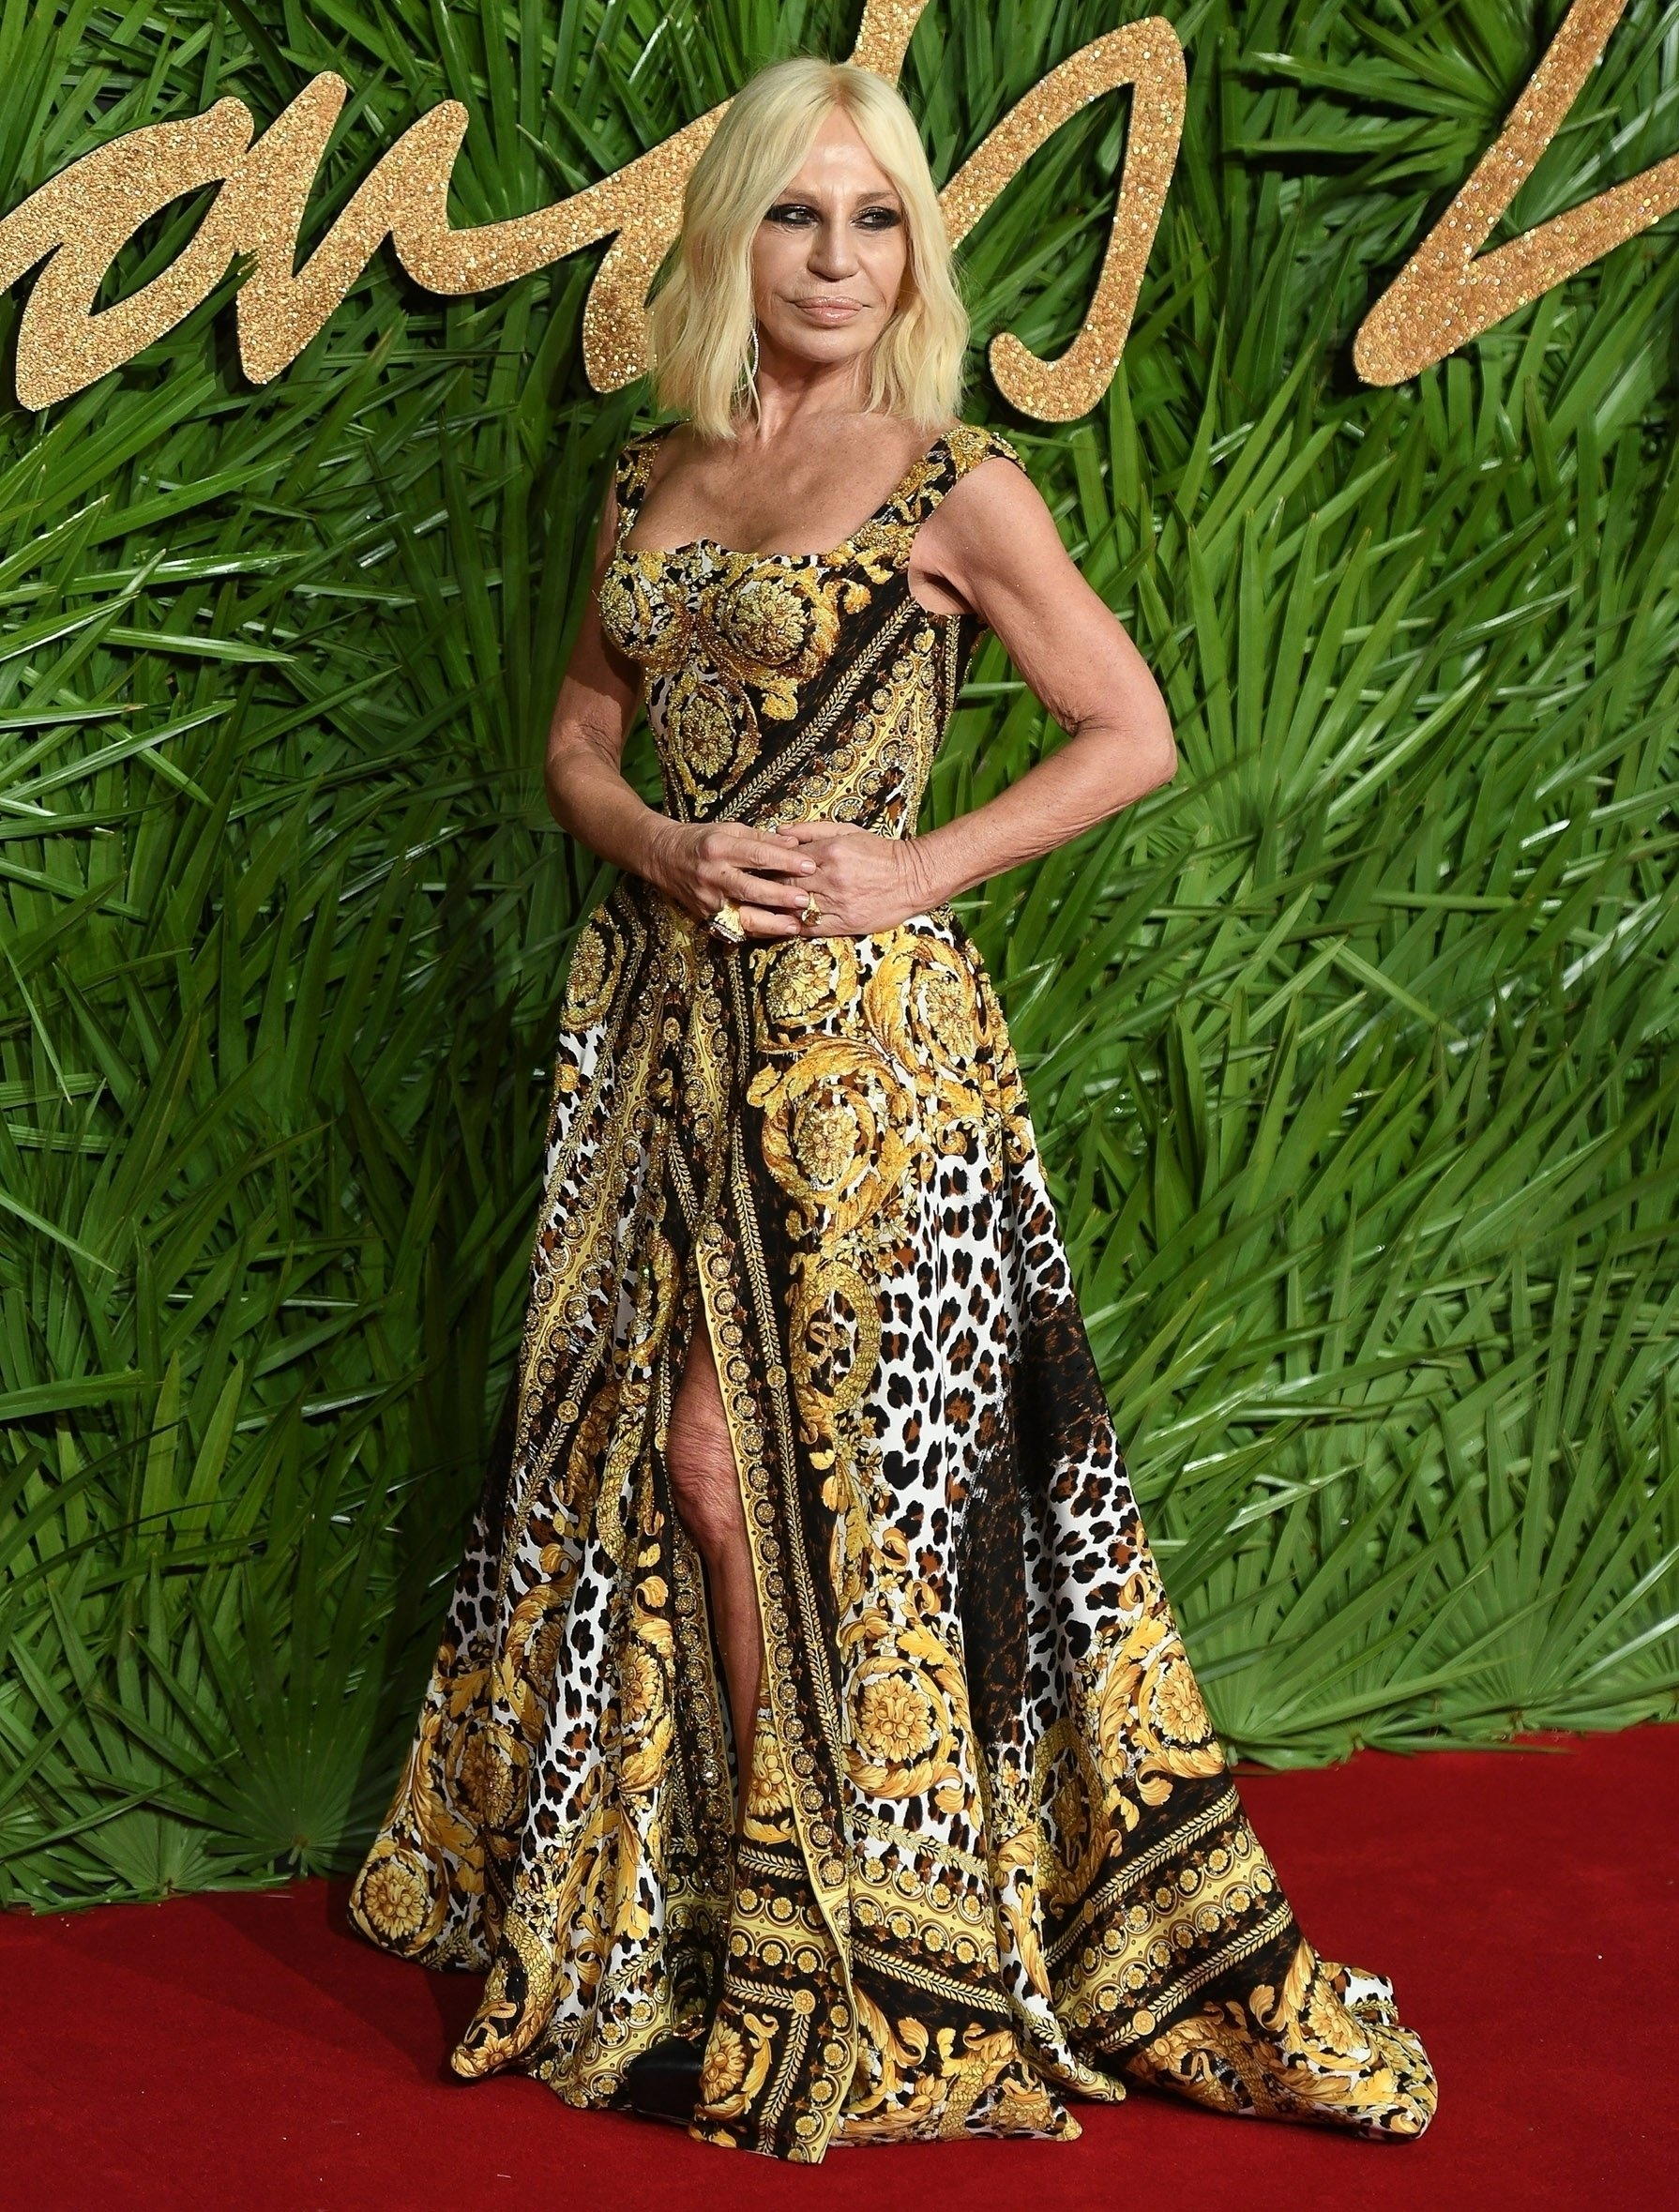 London, UNITED KINGDOM  - Celebrities are seen attending the 2017 Fashion Awards held at the Royal Albert Hall in London, UK.  Pictured: Donatella Versace  BACKGRID UK 4 DECEMBER 2017, Image: 357063763, License: Rights-managed, Restrictions: , Model Release: no, Credit line: Profimedia, Xposurephotos